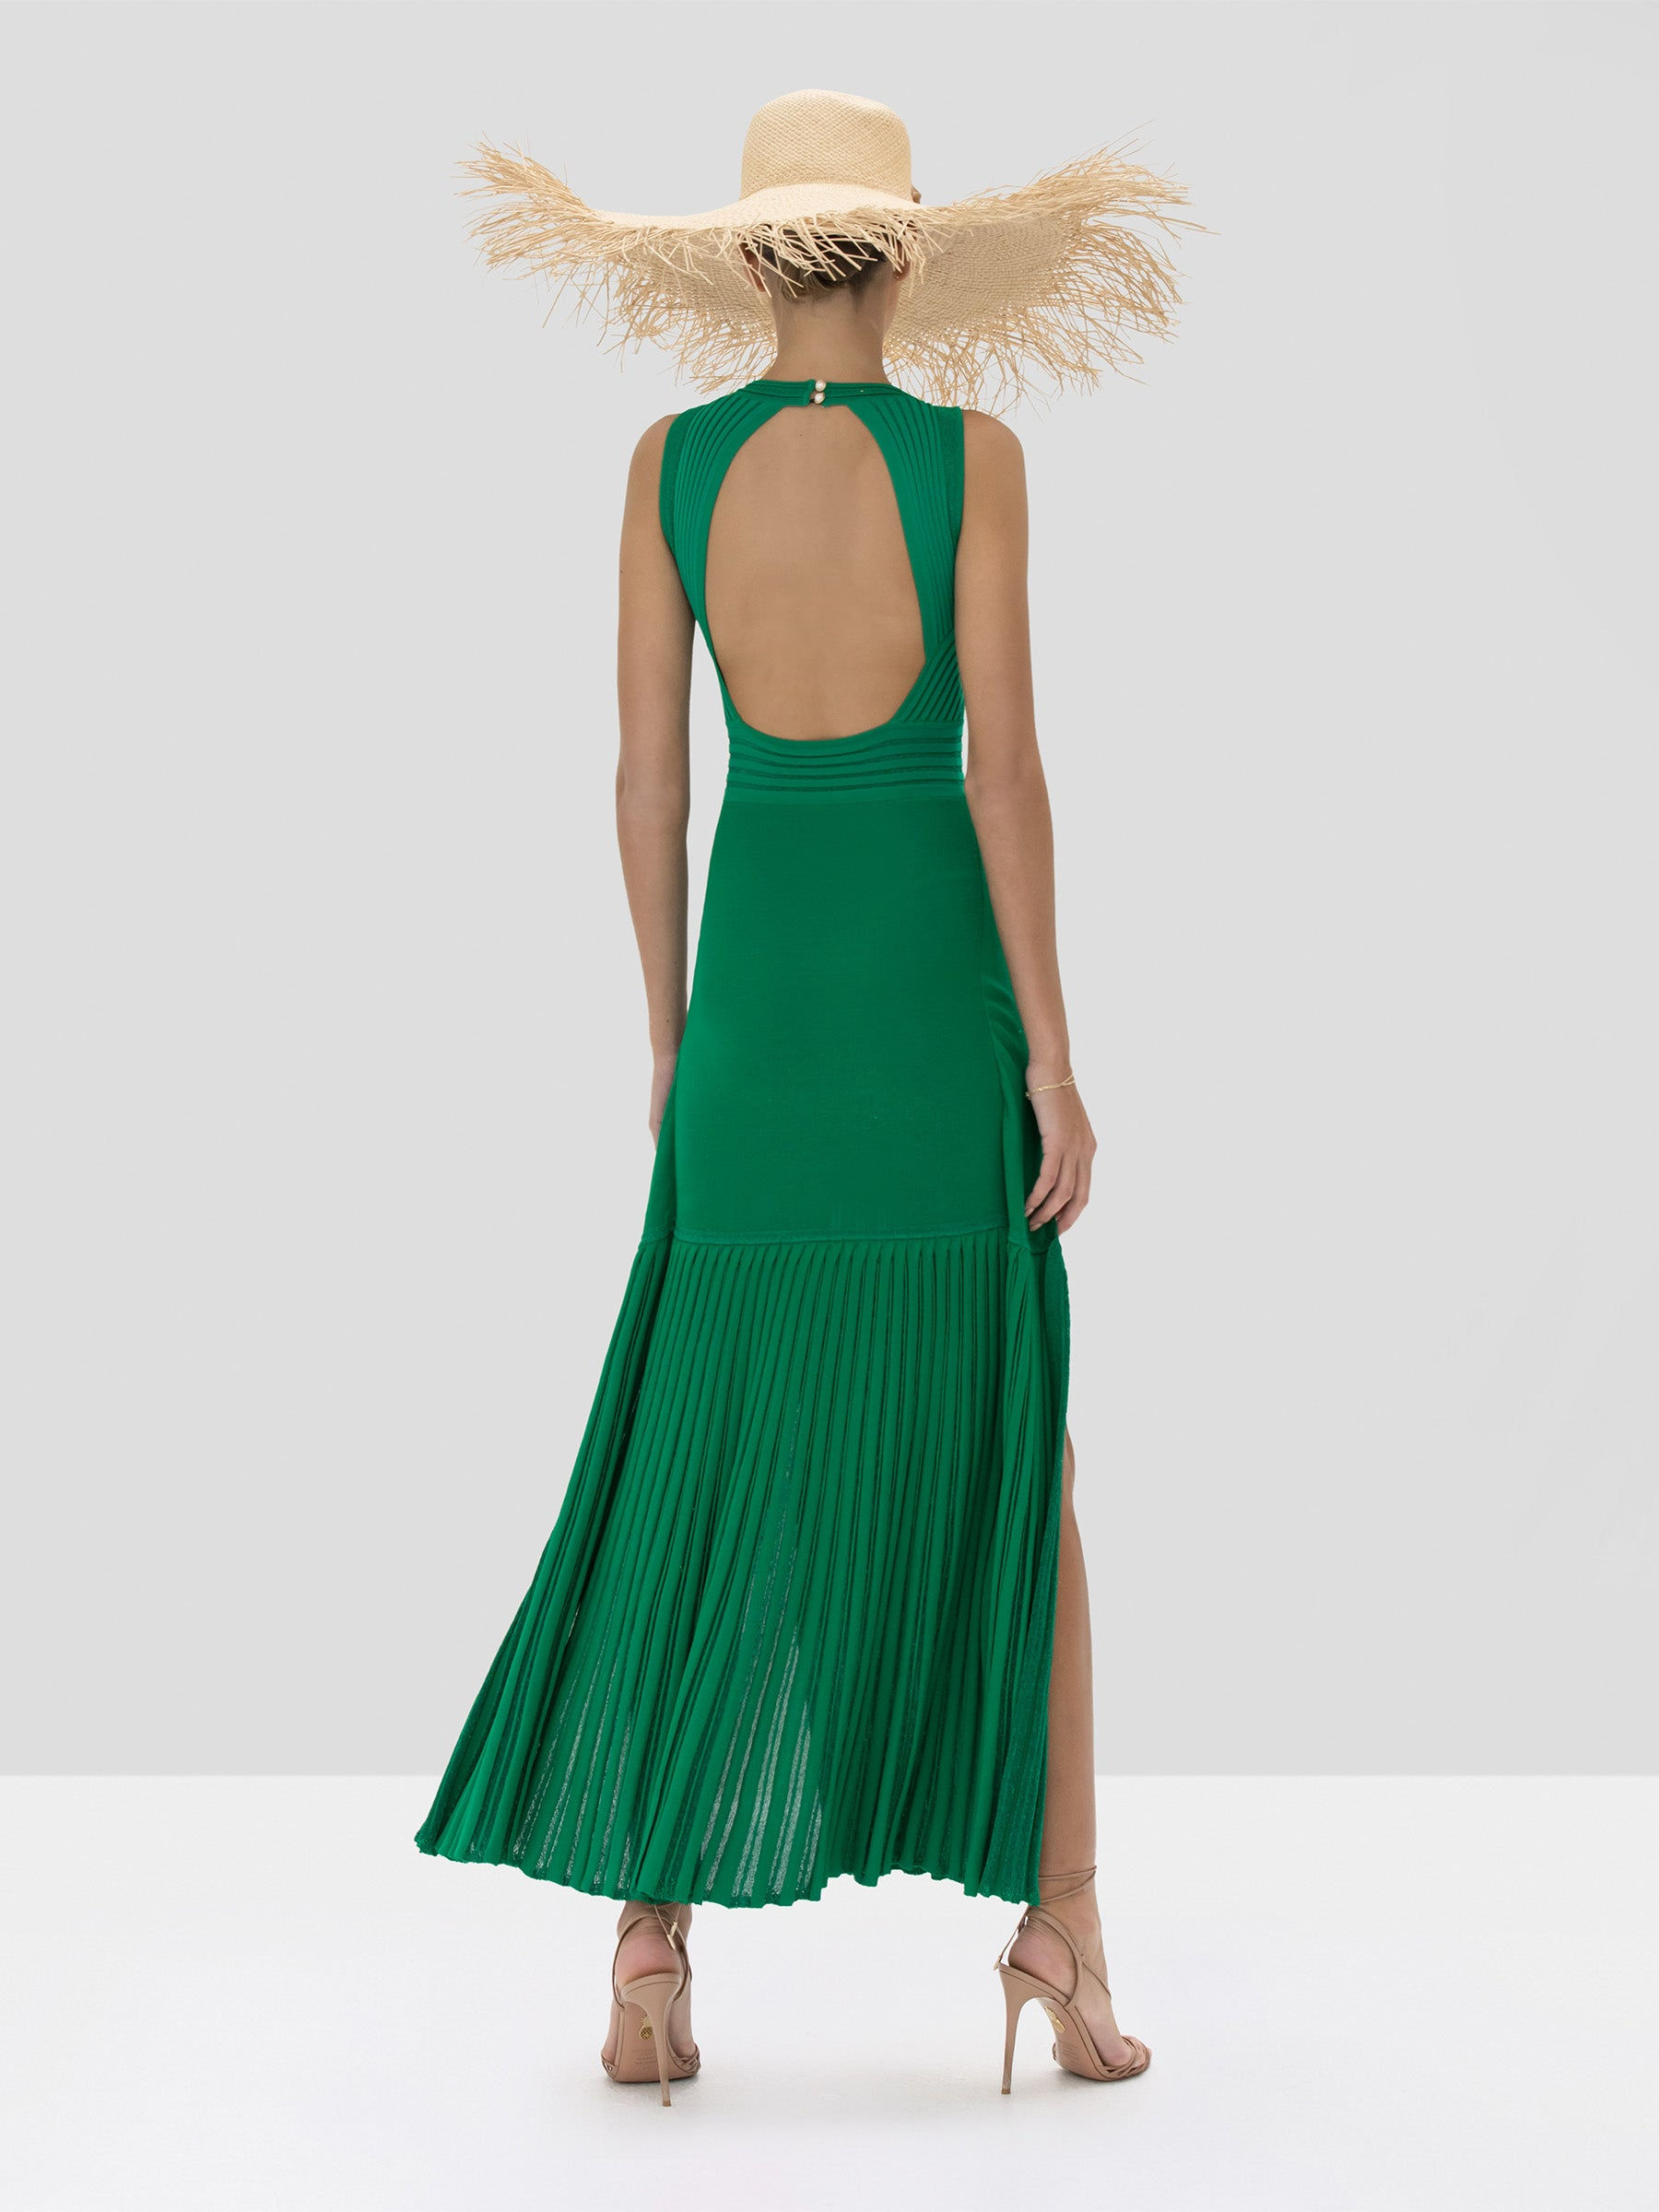 Alexis Gara Dress in Green from the Spring Summer 2020 Collection - Rear View